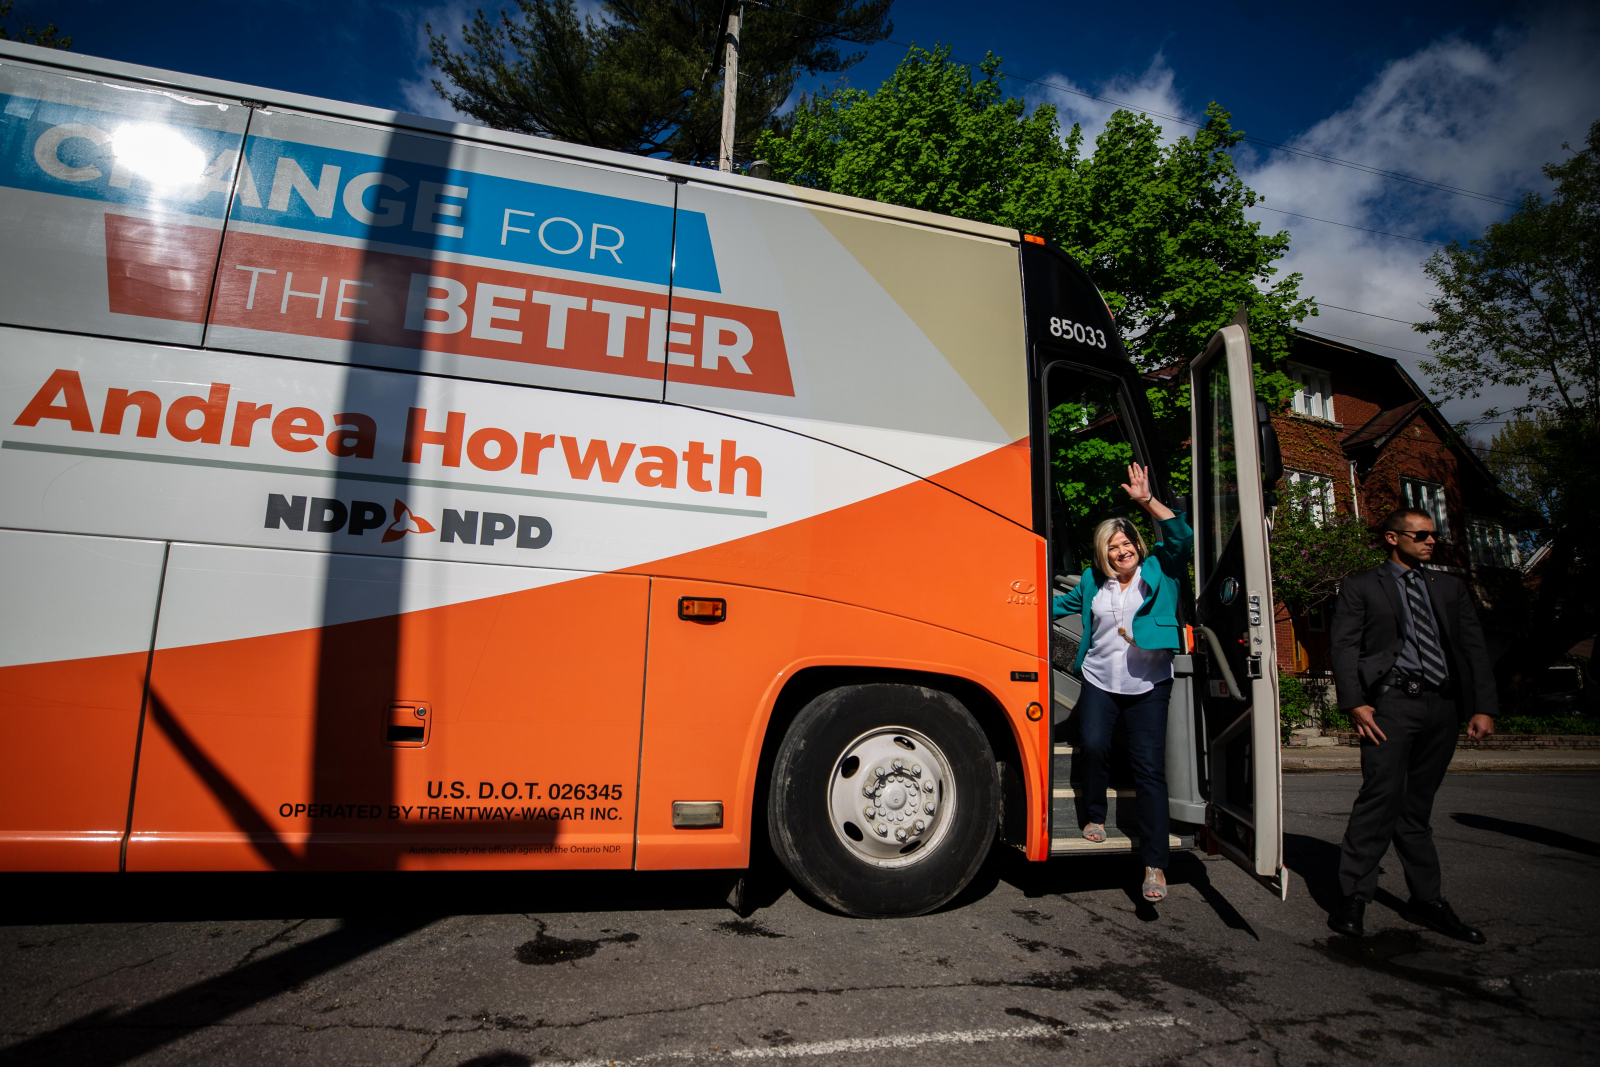 Ontario NDP Leader Andrea Horwath arrives at a campaign event in Ottawa on May 20, 2018. Photo by Alex Tétreault